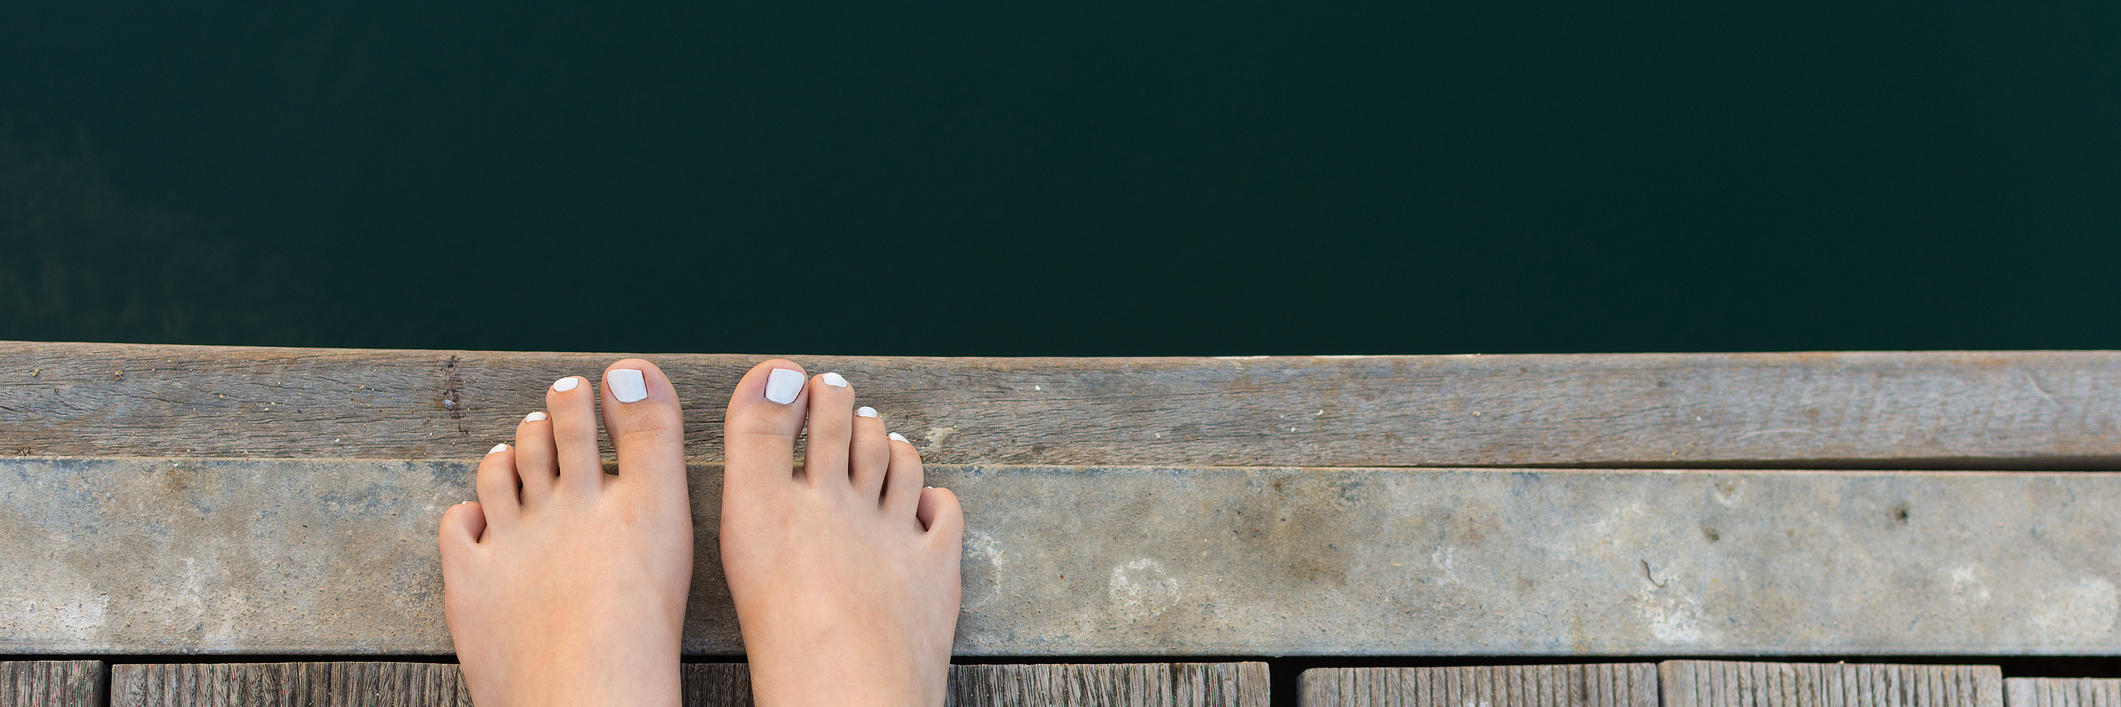 woman's feet on wooden pier overlooking water